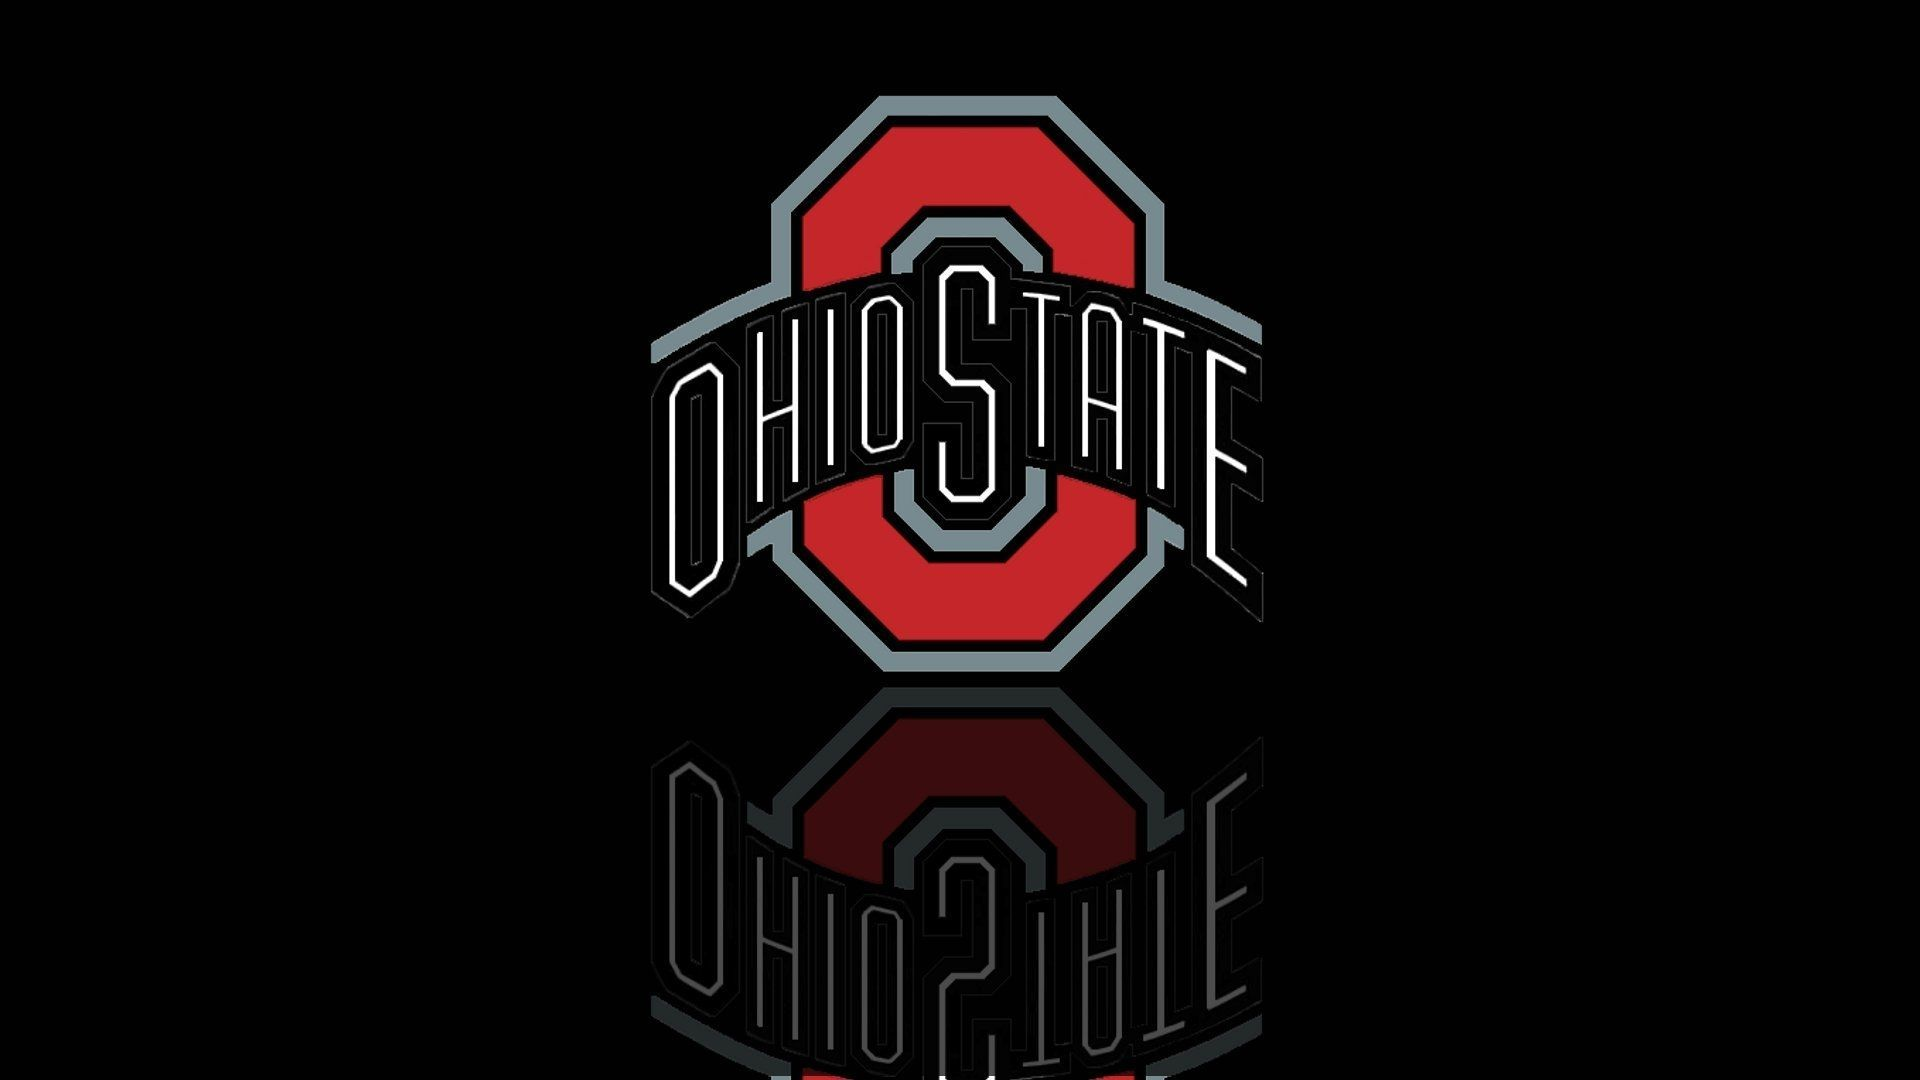 10 New Ohio State Football Wallpaper 2016 Full Hd 1920 1080 For Pc Desktop Ohio State Buckeyes Football Ohio State Logo Ohio State Football